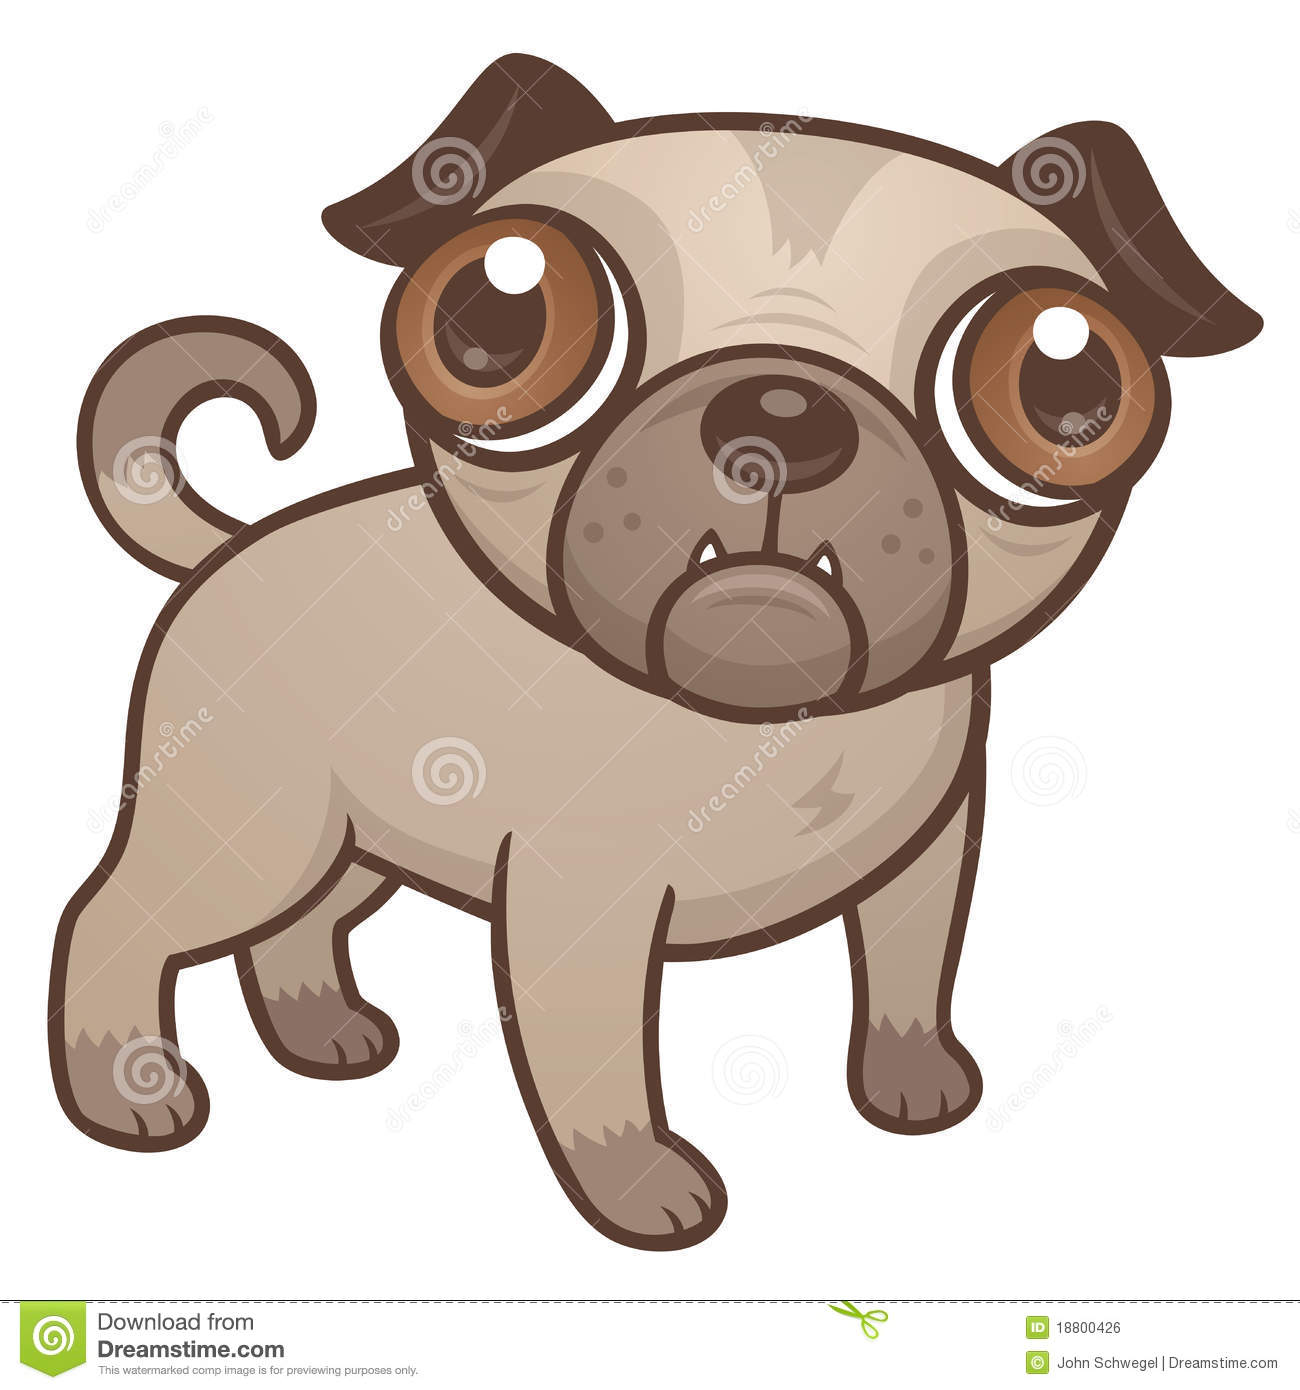 pug puppy cartoon stock vector illustration of puppy 18800426 rh dreamstime com funny cartoon puppy pictures cartoon puppy images to draw